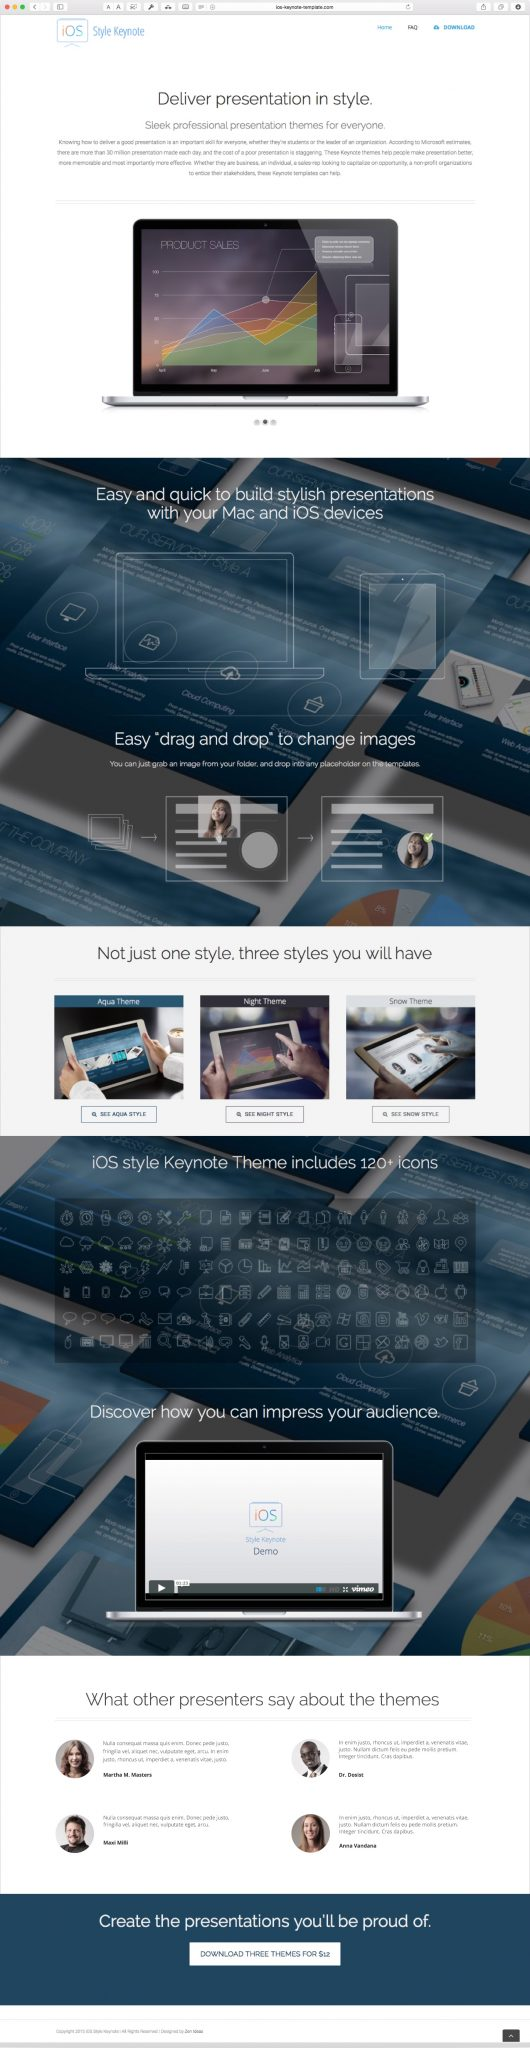 iOS style keynote template website